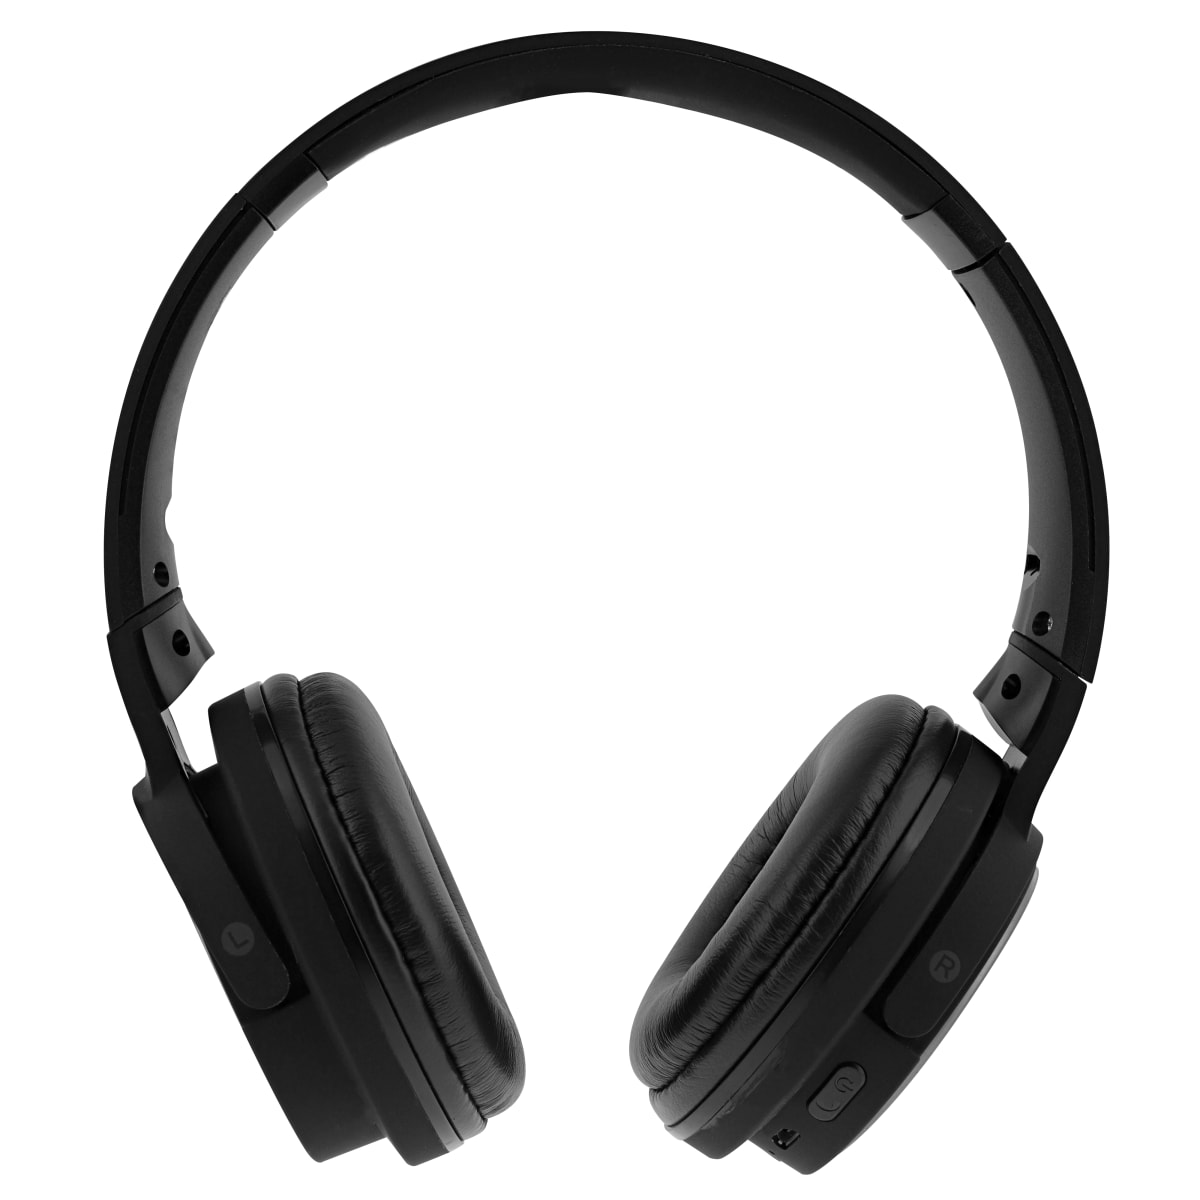 SHINE Bluetooth headphone black